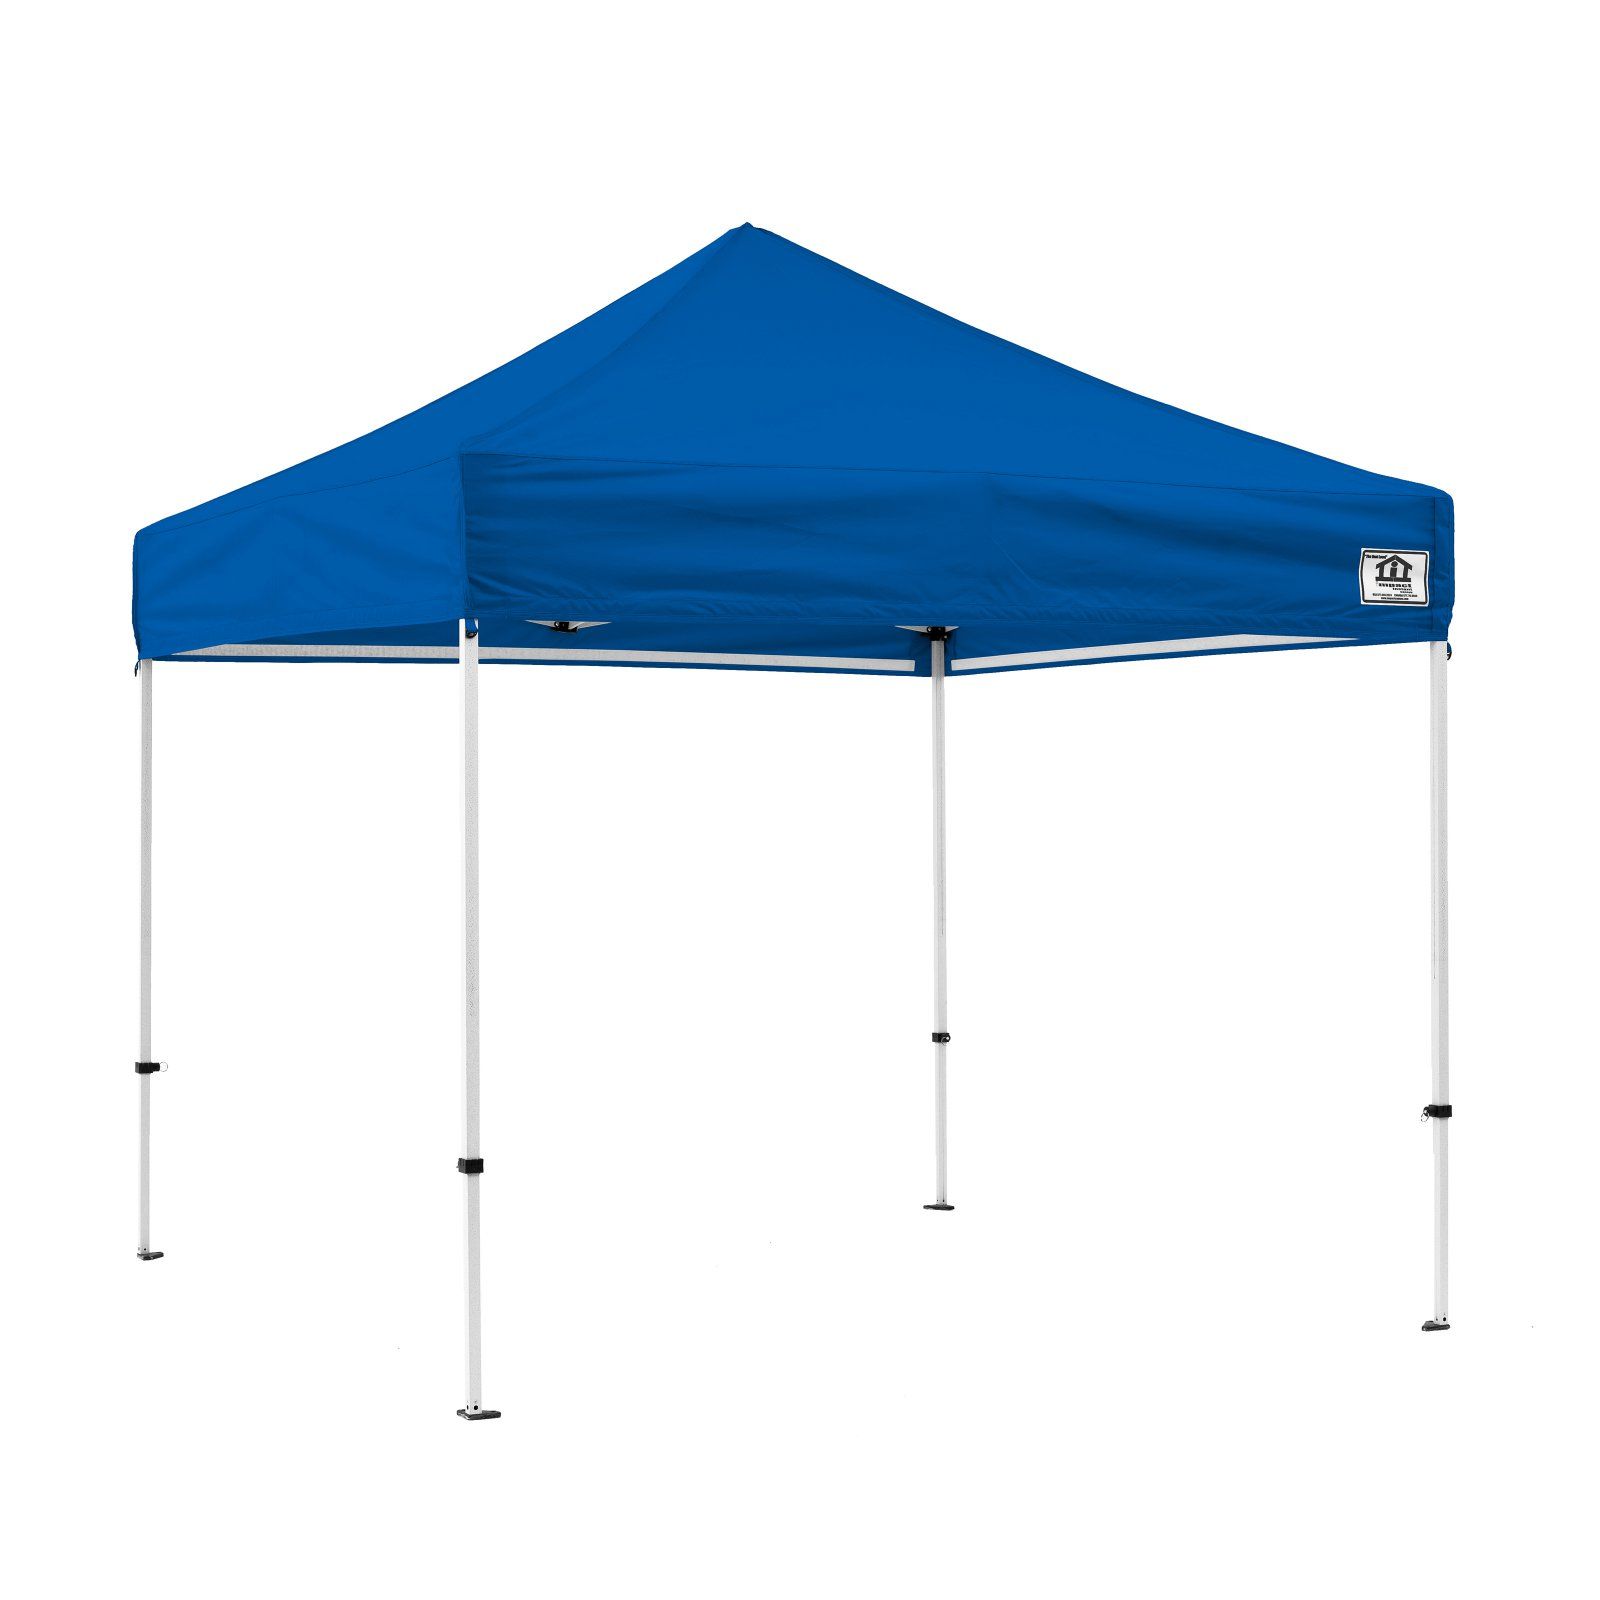 Impact Canopy DS 10x10 ft. Ez Pop Up Canopy Tent Instant Beach Canopy Tent Gazebo  sc 1 st  Walmart & Impact Canopy DS 10x10 ft. Ez Pop Up Canopy Tent Instant Beach ...